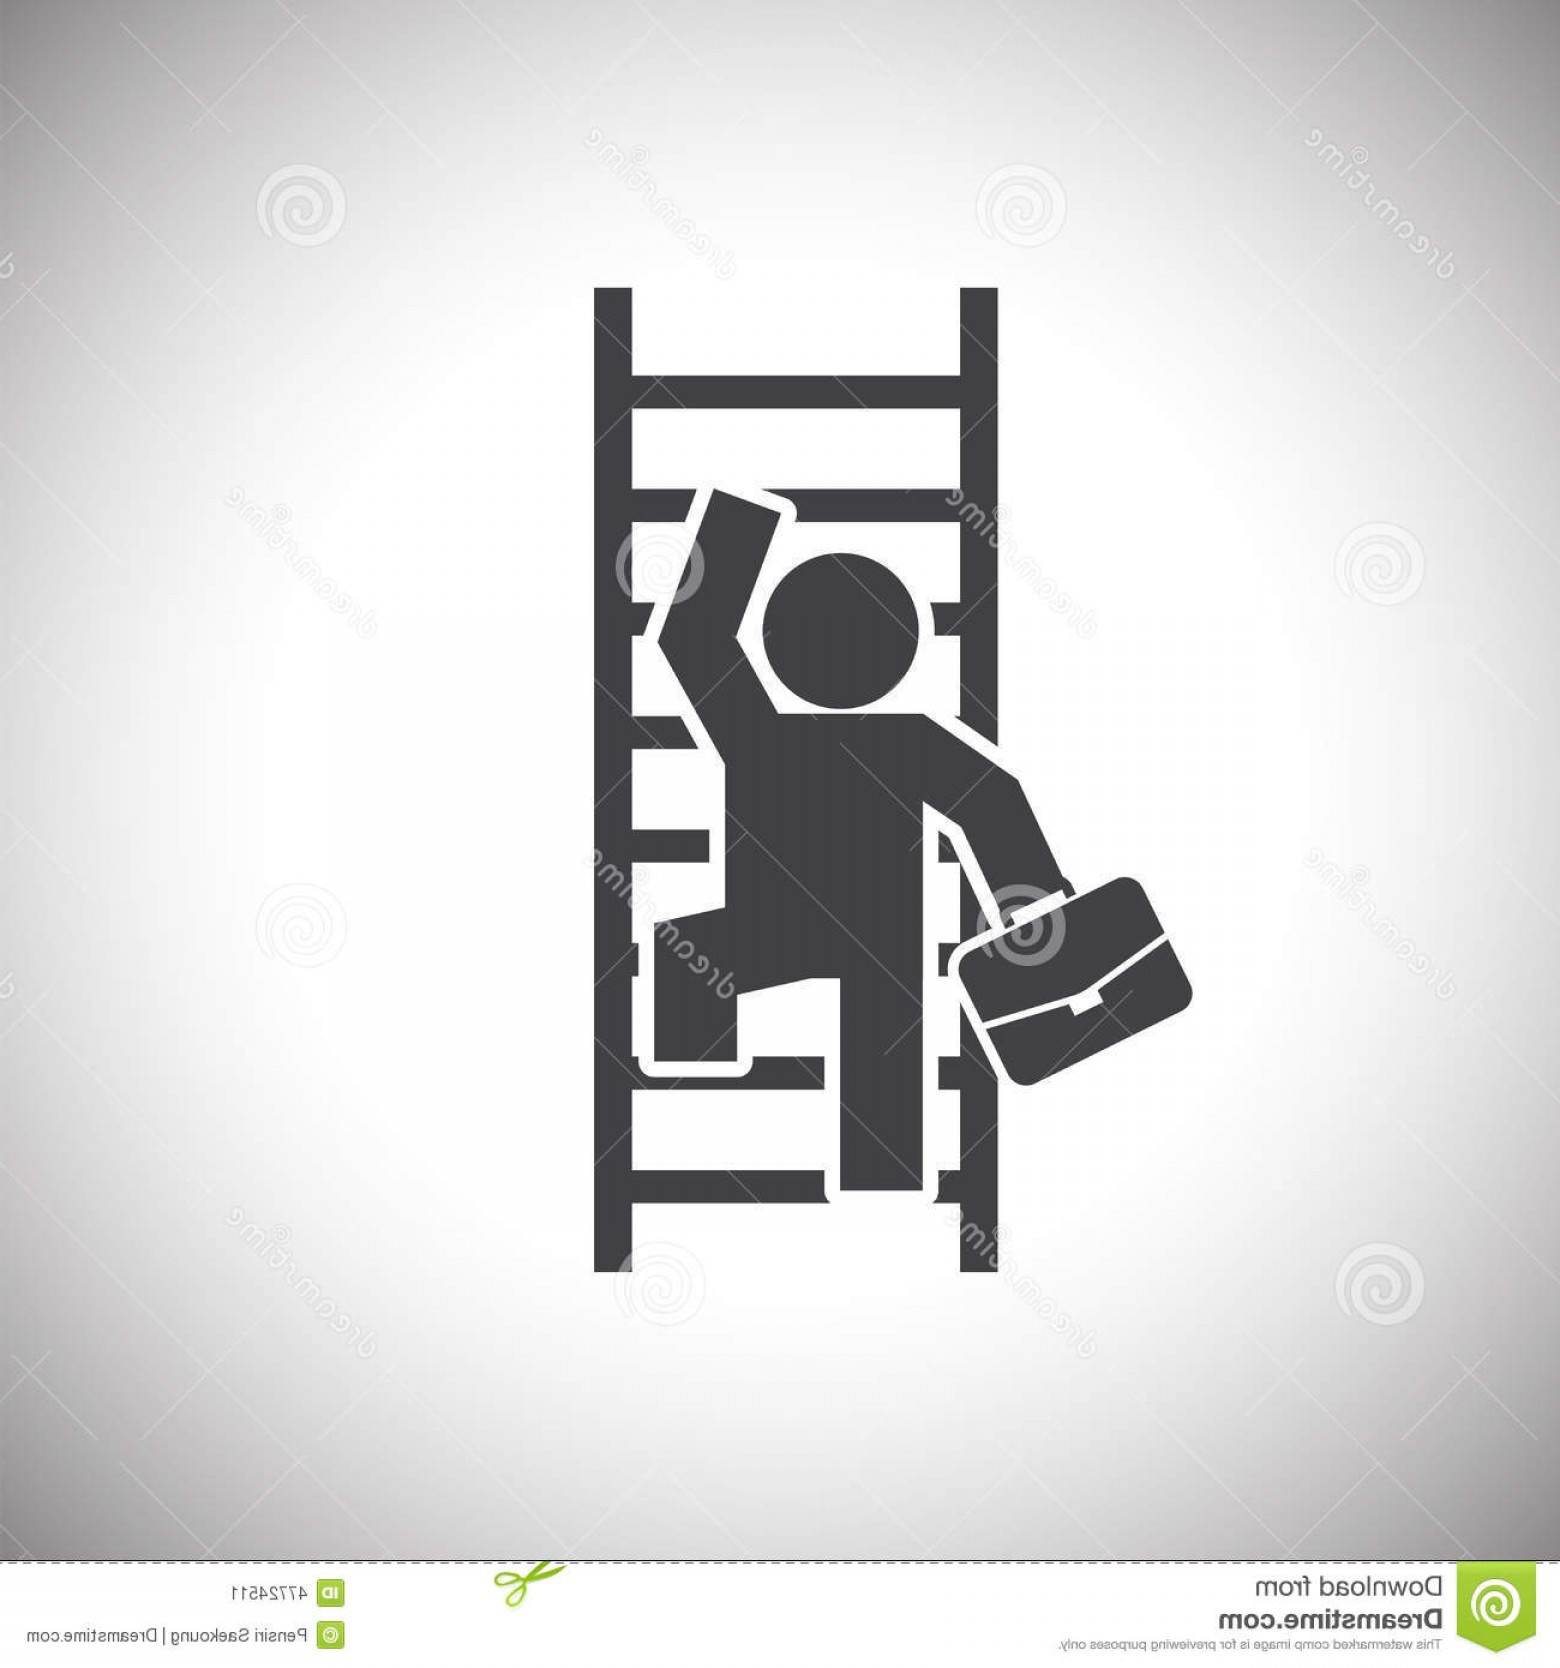 Vector Career Ladder: Stock Illustration Businessman Climbing Ladder Web Icon Illustration Design Vector Image